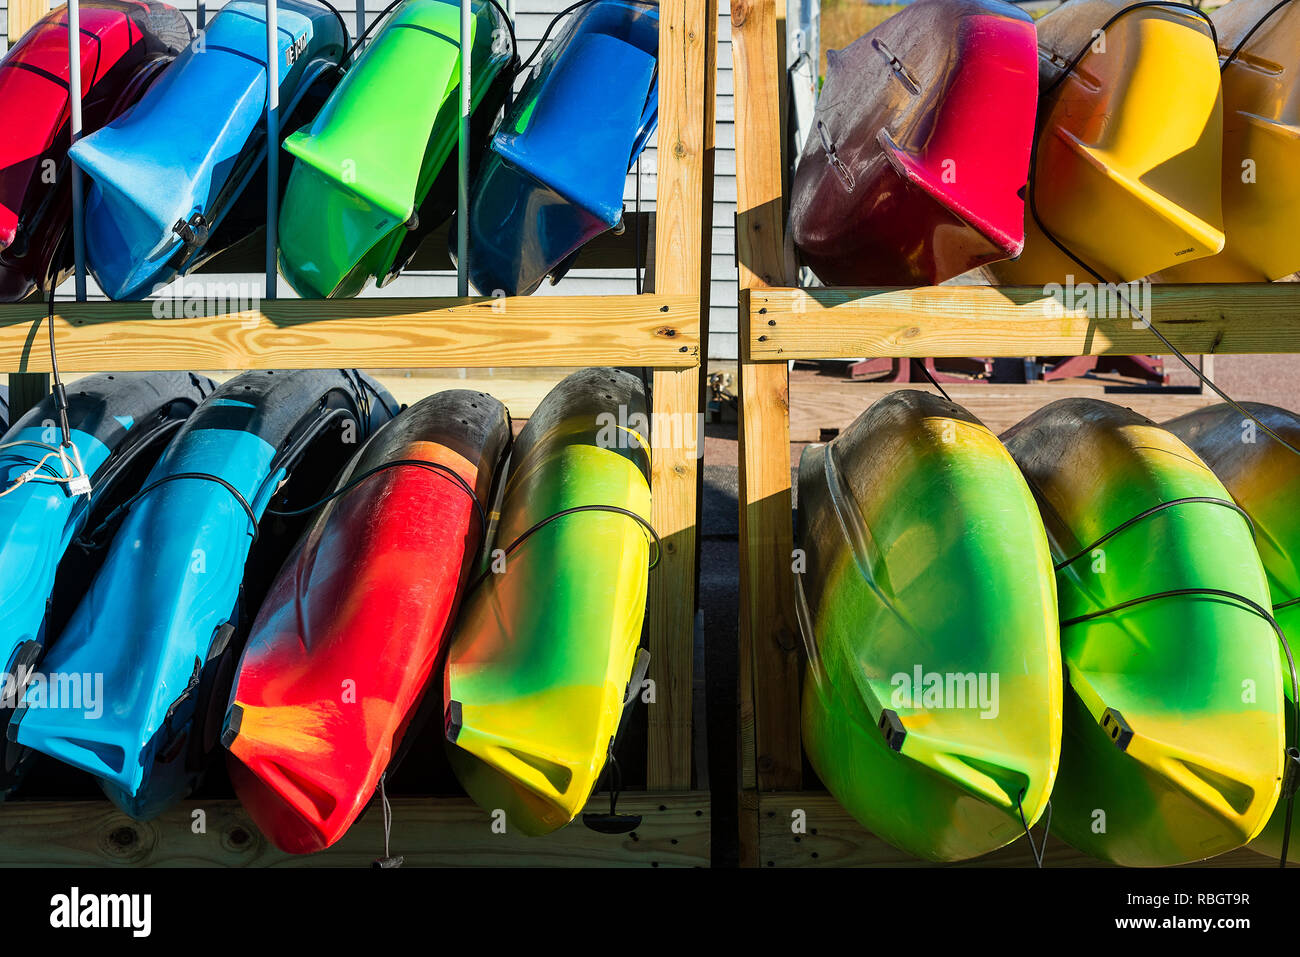 Selection of kayaks available for rent, Cape Cod, Massachusetts, USA. - Stock Image